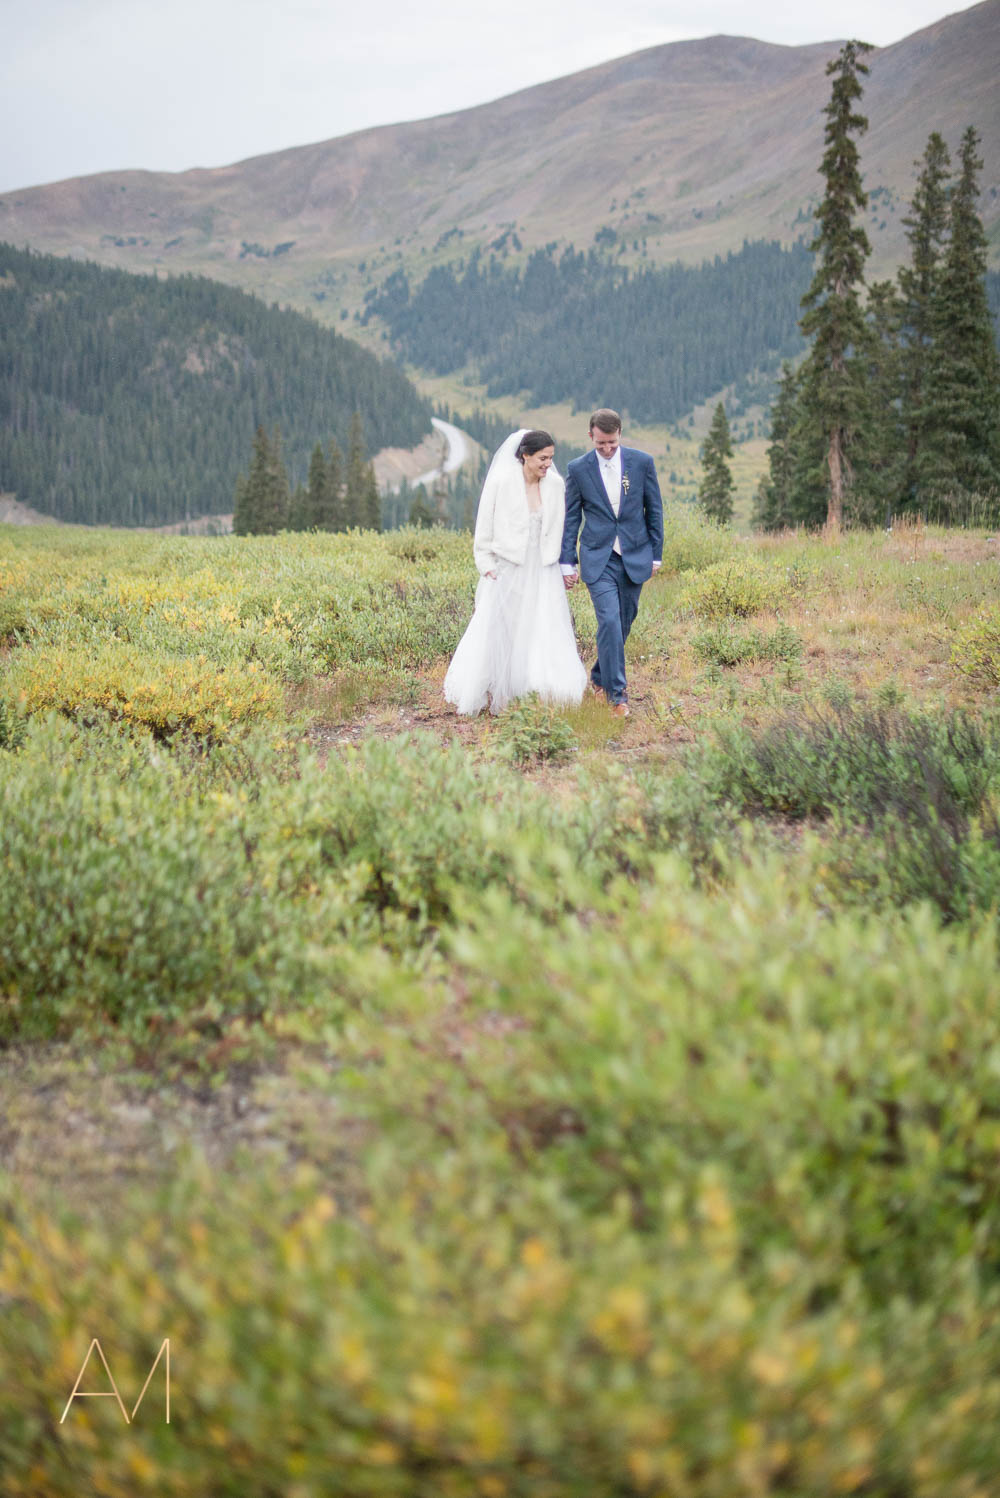 AshleighMillerWeddings-JennyAllen-ArapahoeBasin-Keystone-Colorado-3898.jpg